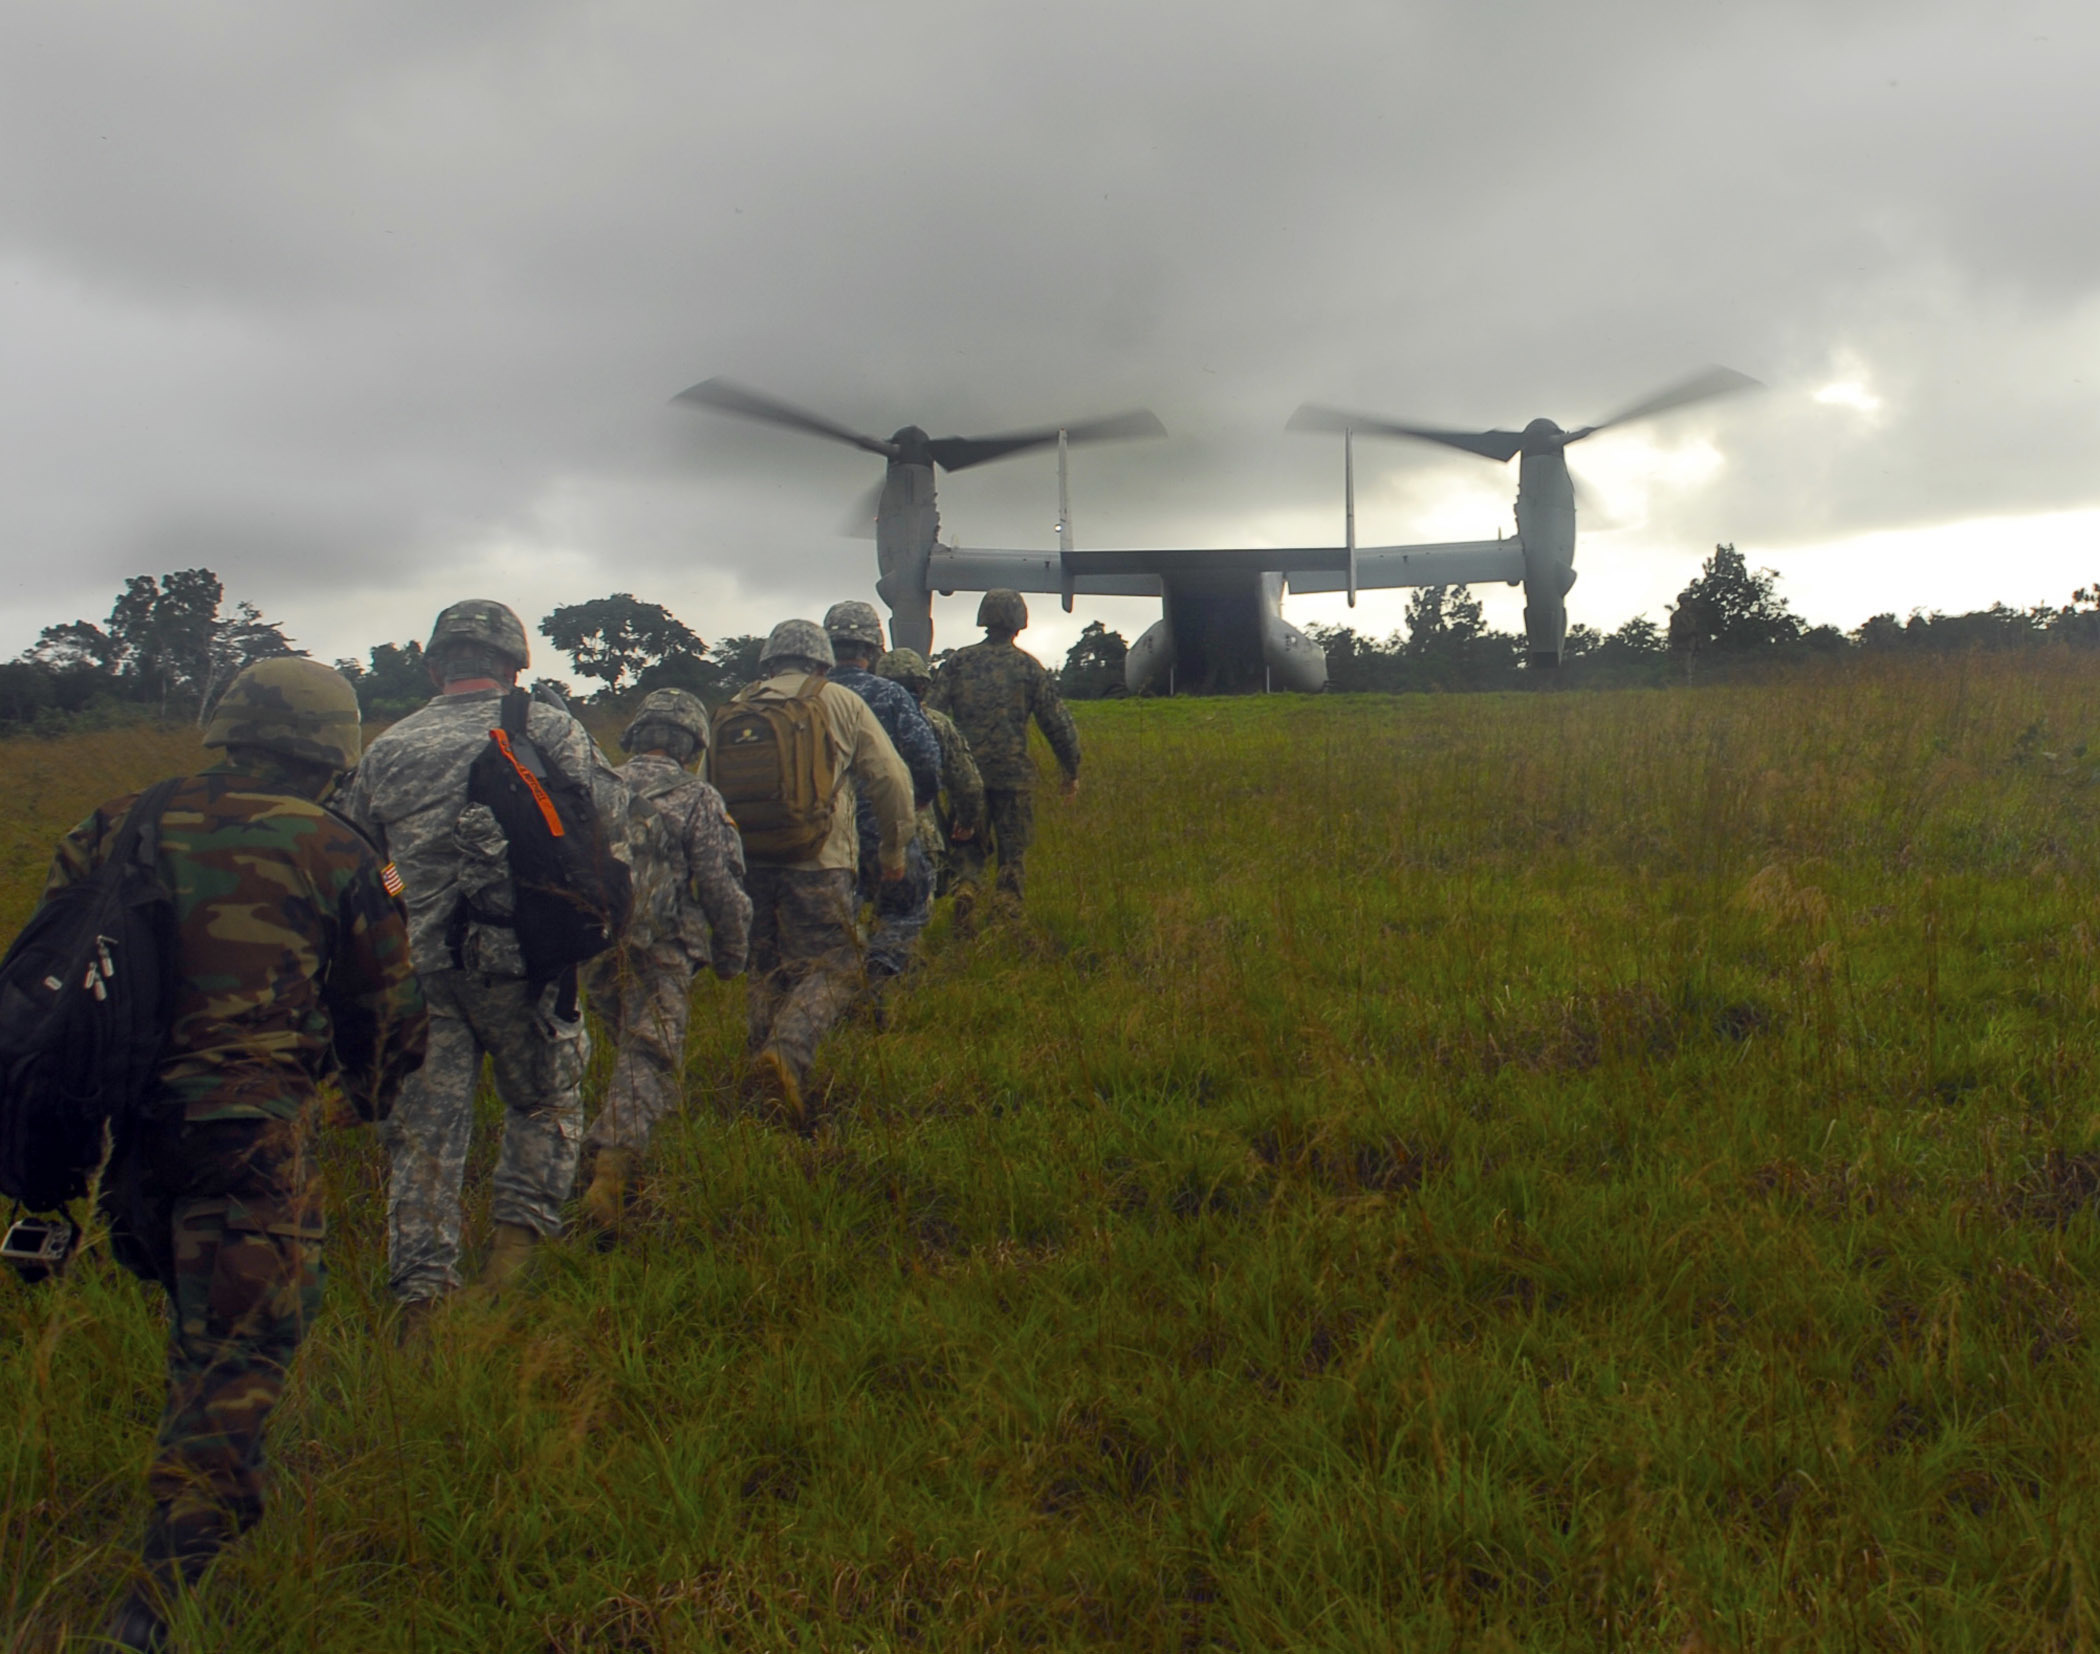 """U.S. Army and Marine Corps personnel prepare to board a U.S. Marine Corps MV-22 aircraft in October 2014 after surveying the site of a future Ebola treatment unit near Barclayville, Liberia. The U.S. military forces in West Africa during the Ebola outbreak worked well with the civilian machinery running the response, Aylward says, adding that U.S. aircraft """"came in real handy getting out to some of these remote areas."""" (U.S. Army Africa photo by Pfc. Craig Philbrick)"""